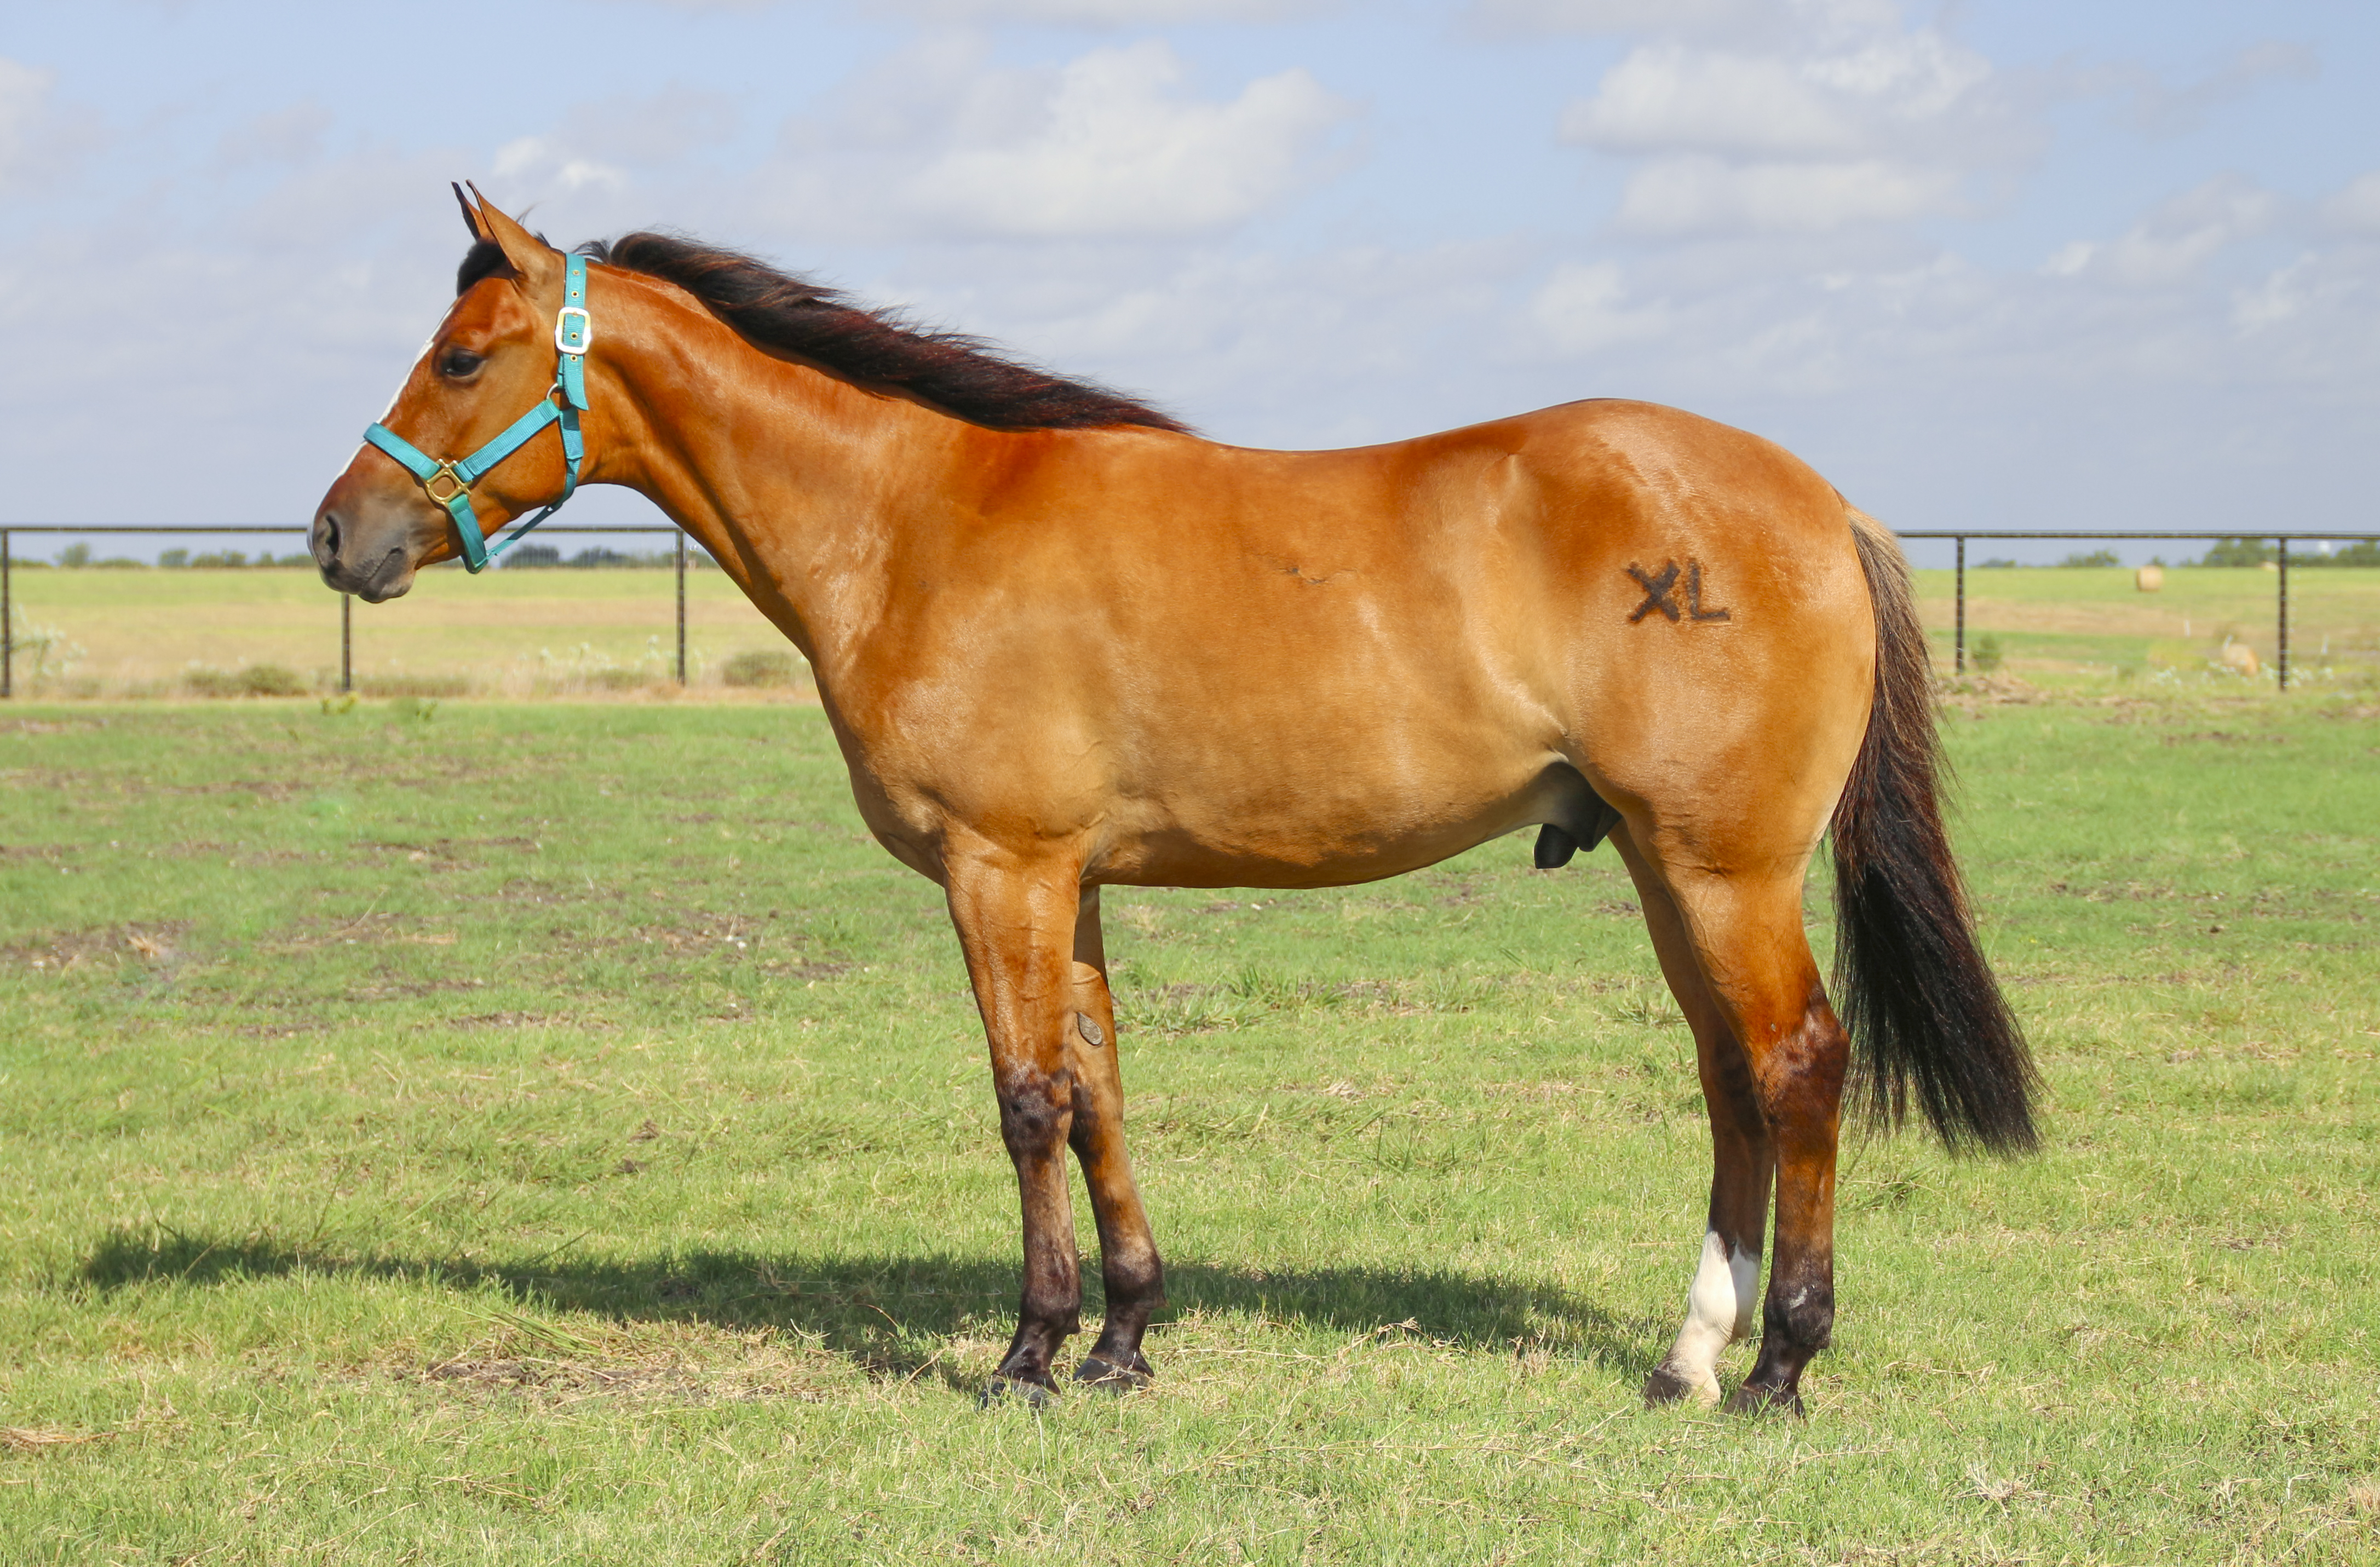 Pin by Abel on Guys with Critters | American quarter horse